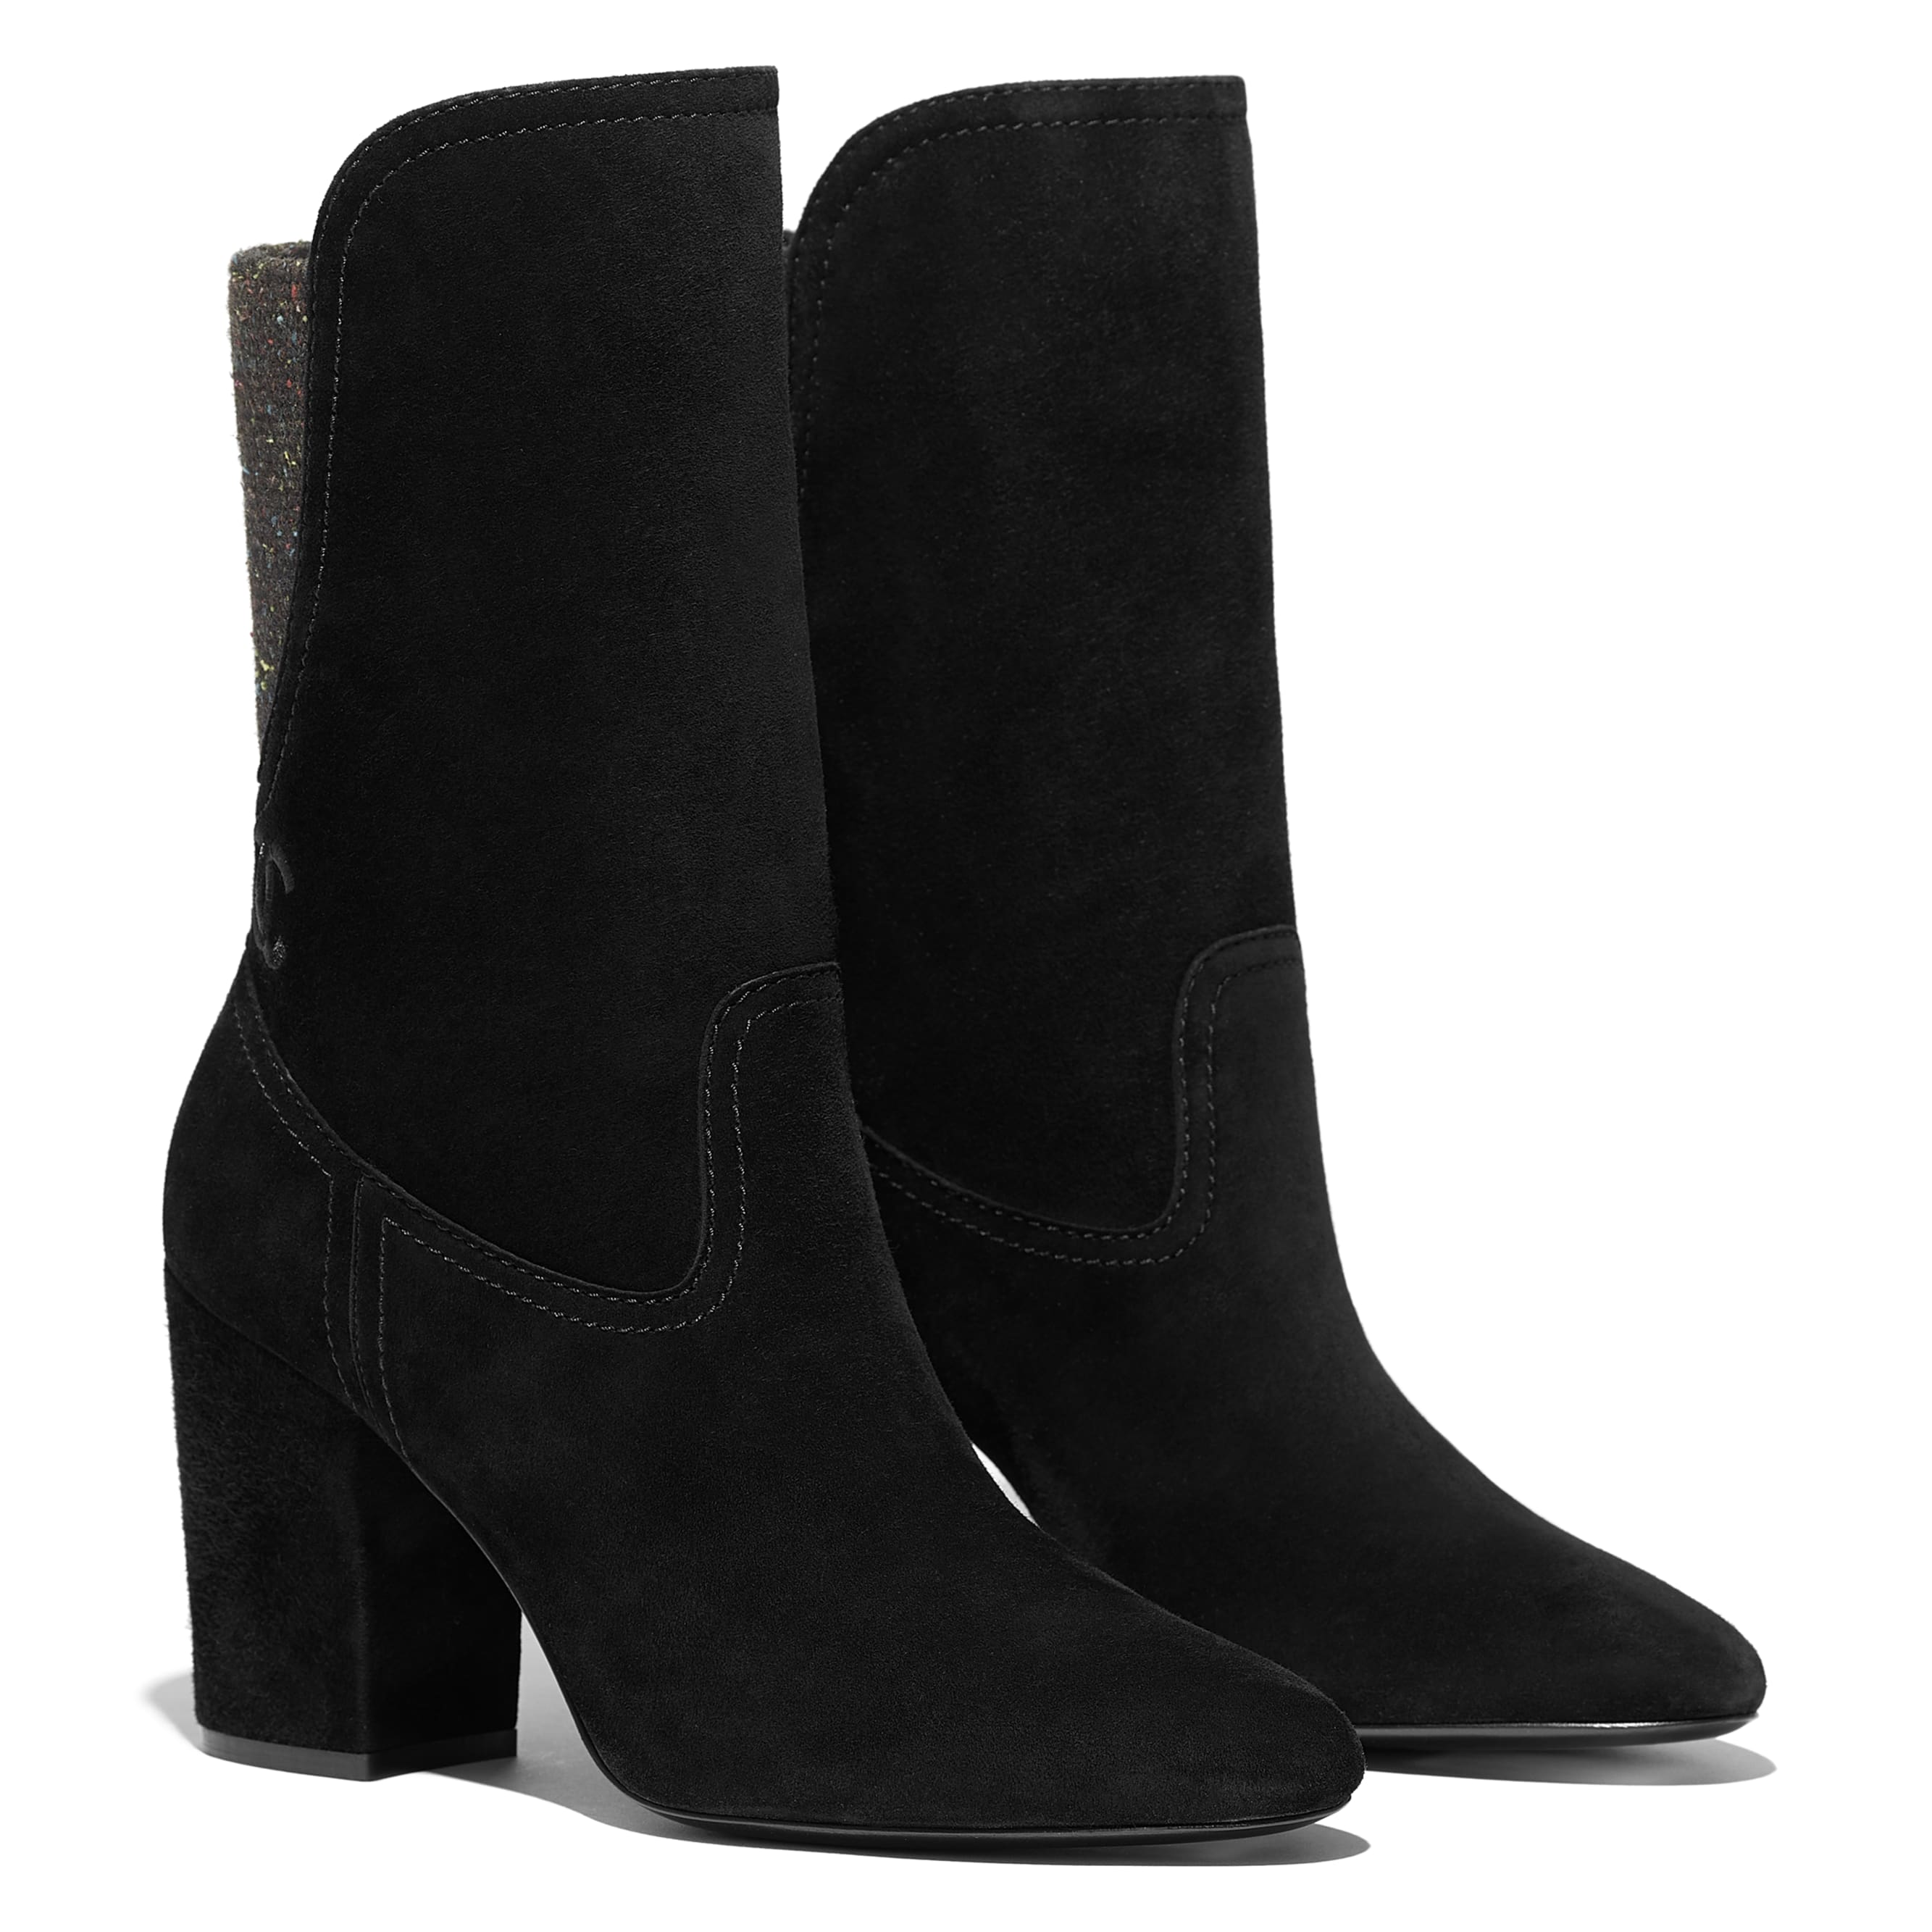 Ankle Boots - Black -  Velvet Calfskin & Mixed Fibers - Alternative view - see standard sized version